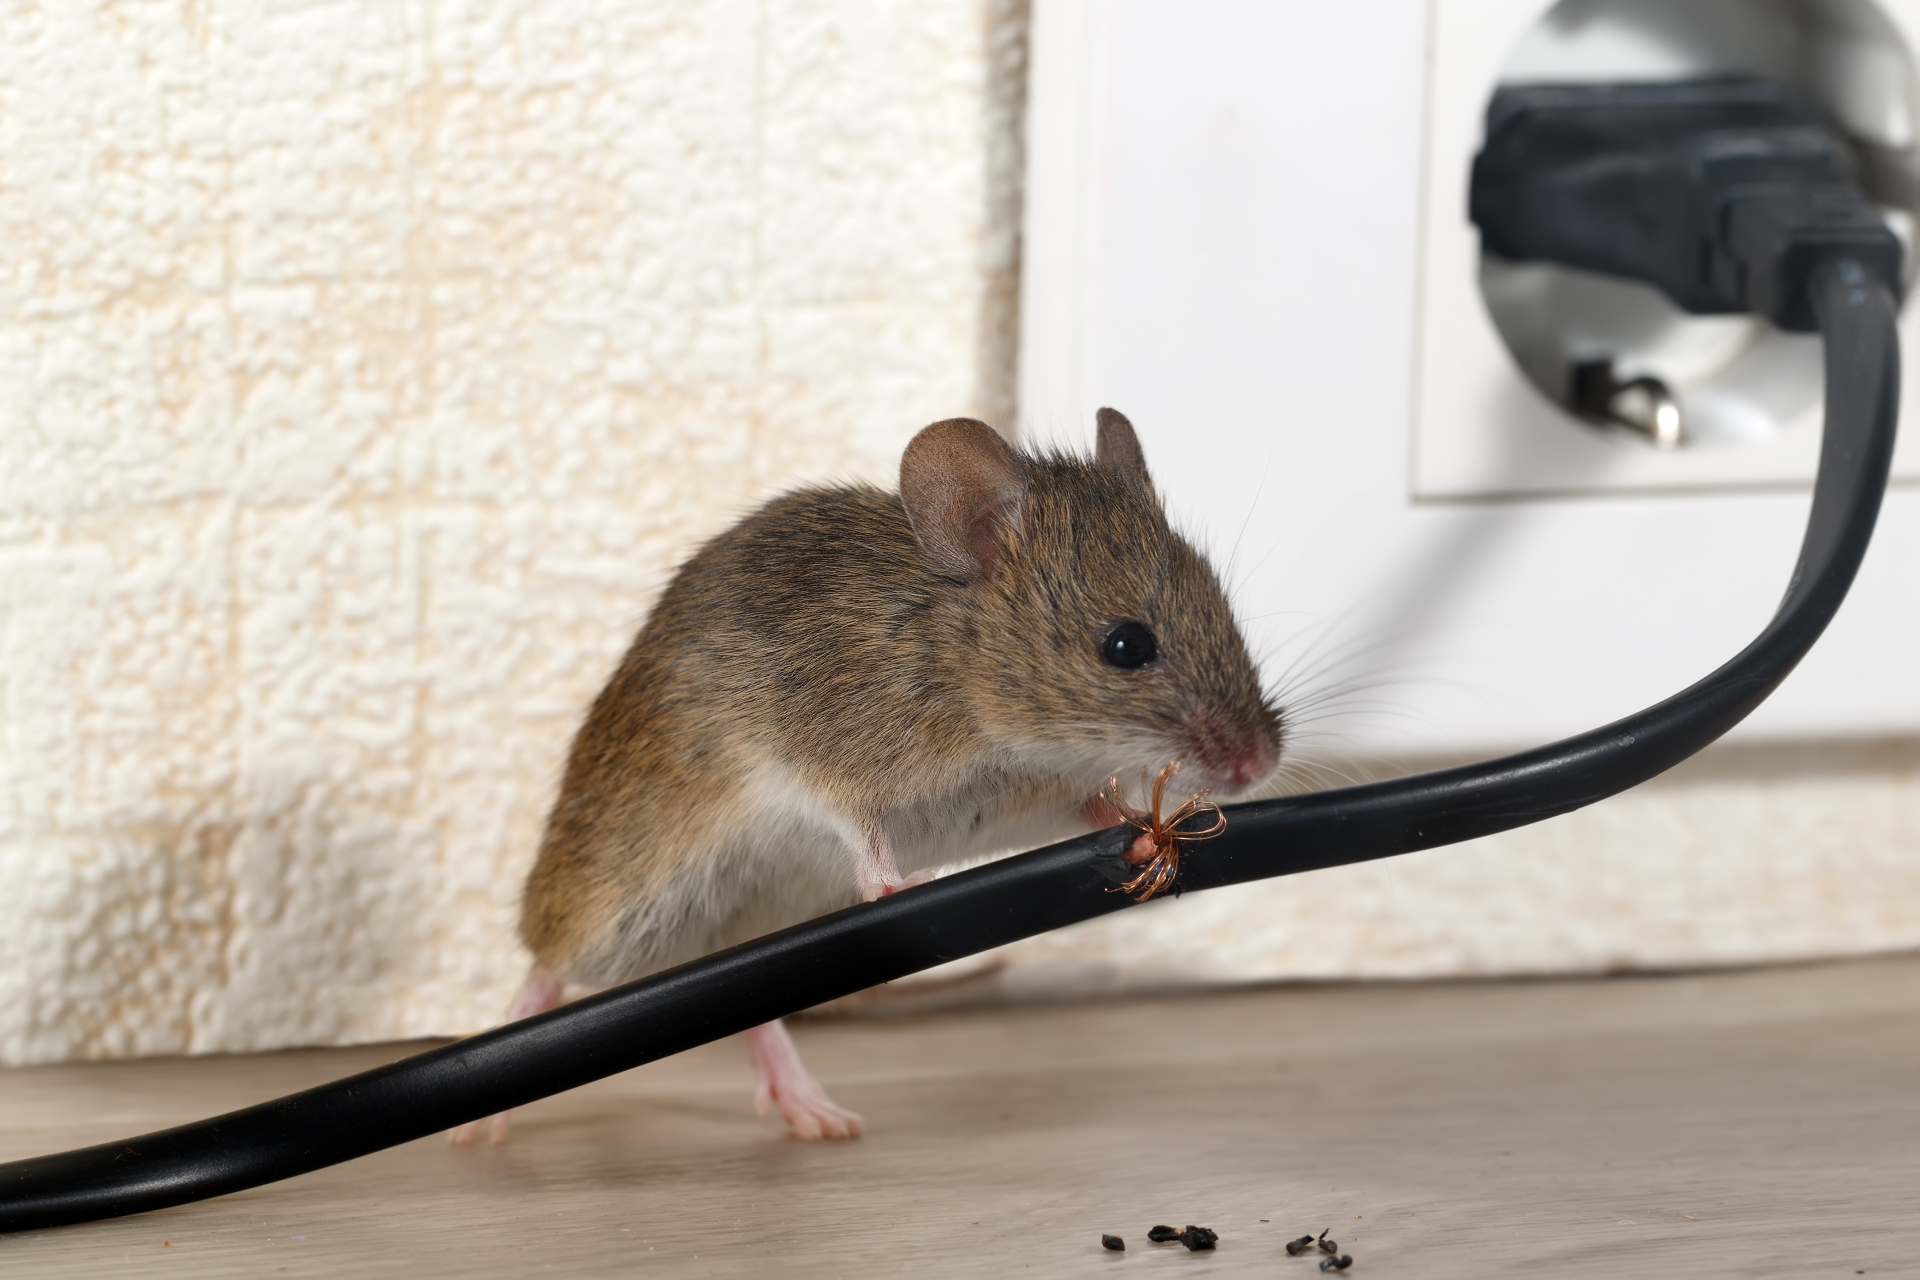 Mice Infestation, Pest Control in Ladbroke Grove, North Kensington, W10. Call Now 020 8166 9746